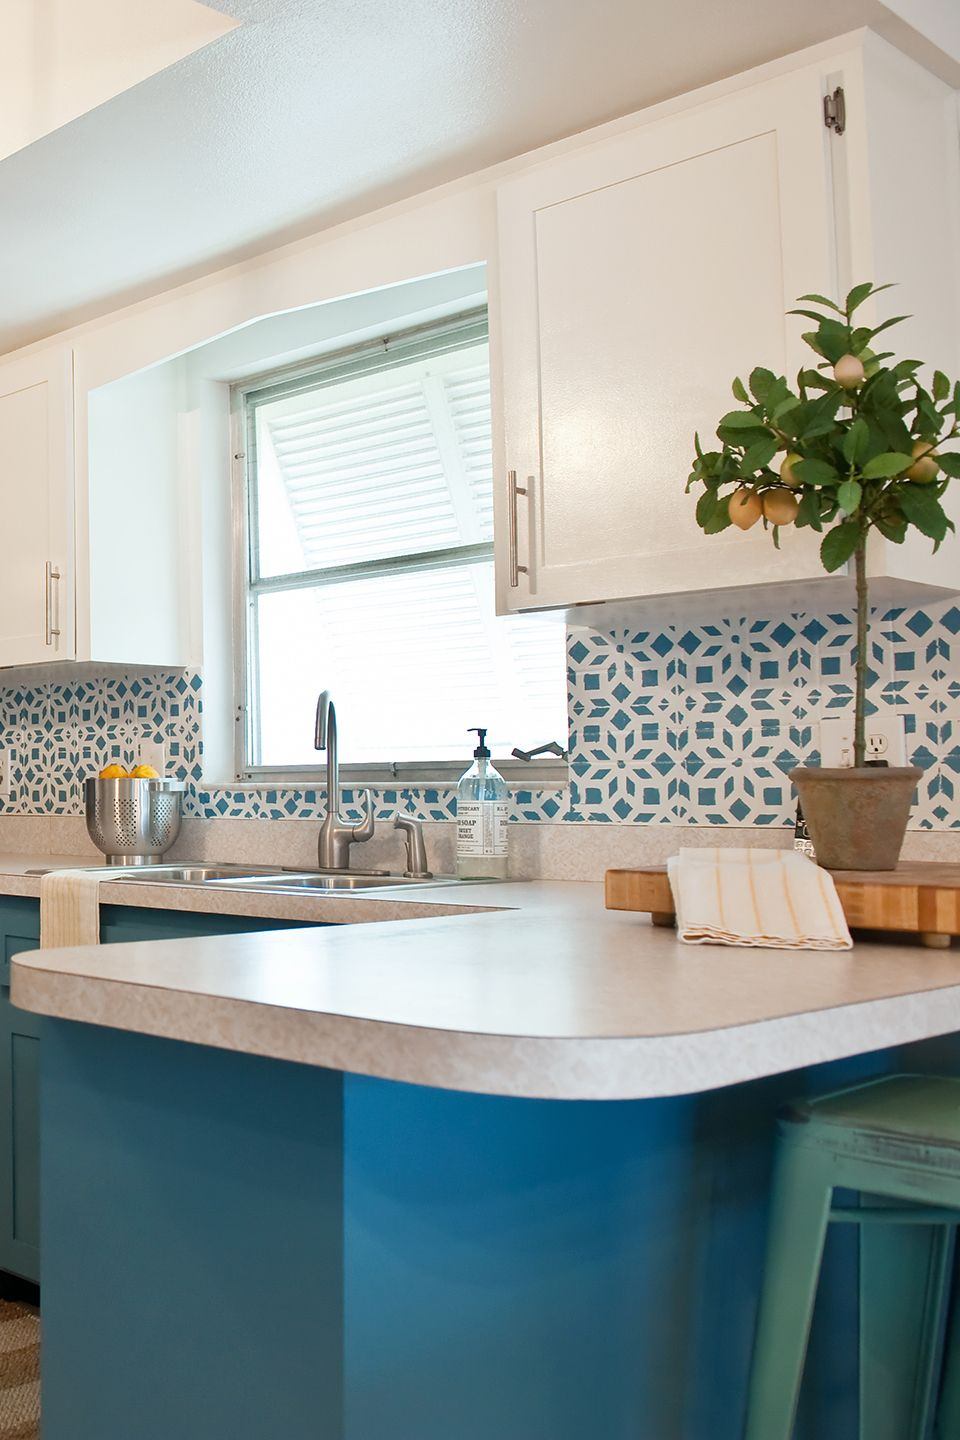 5 LowCost Ideas for a Kitchen Remodel on a Budget in 2020